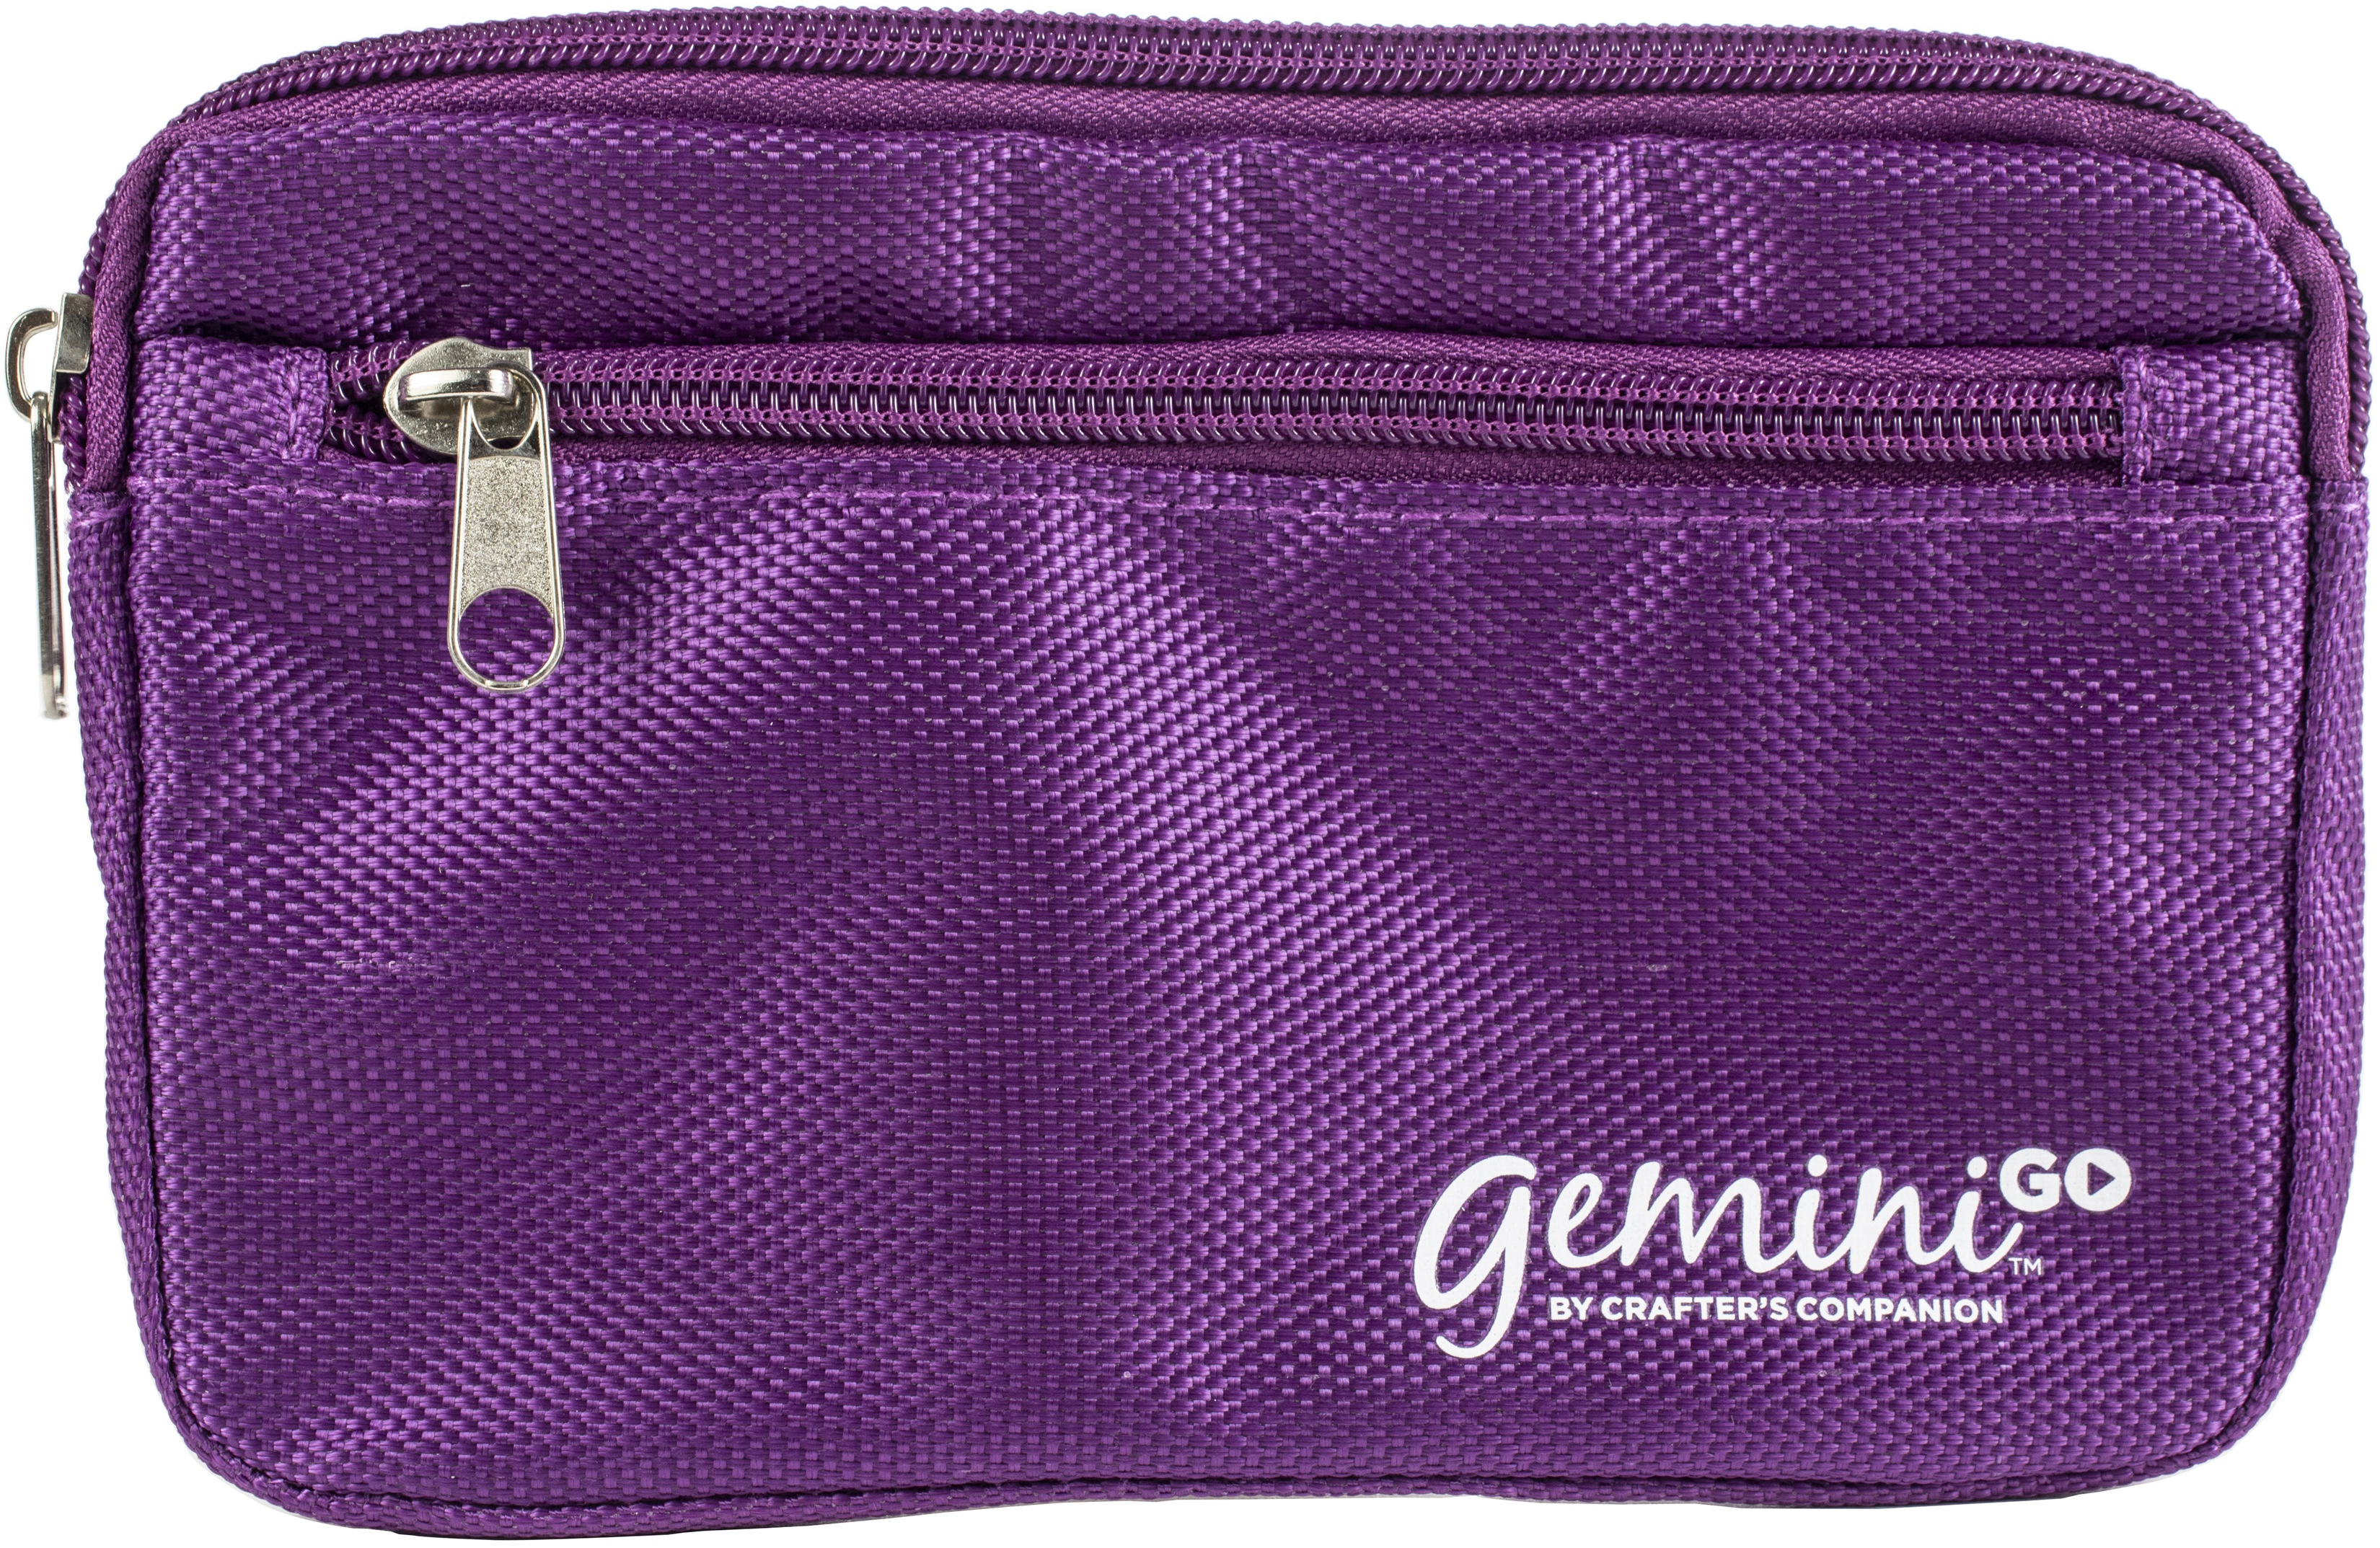 Crafter's Companion Gemini GO Plate Storage Bag